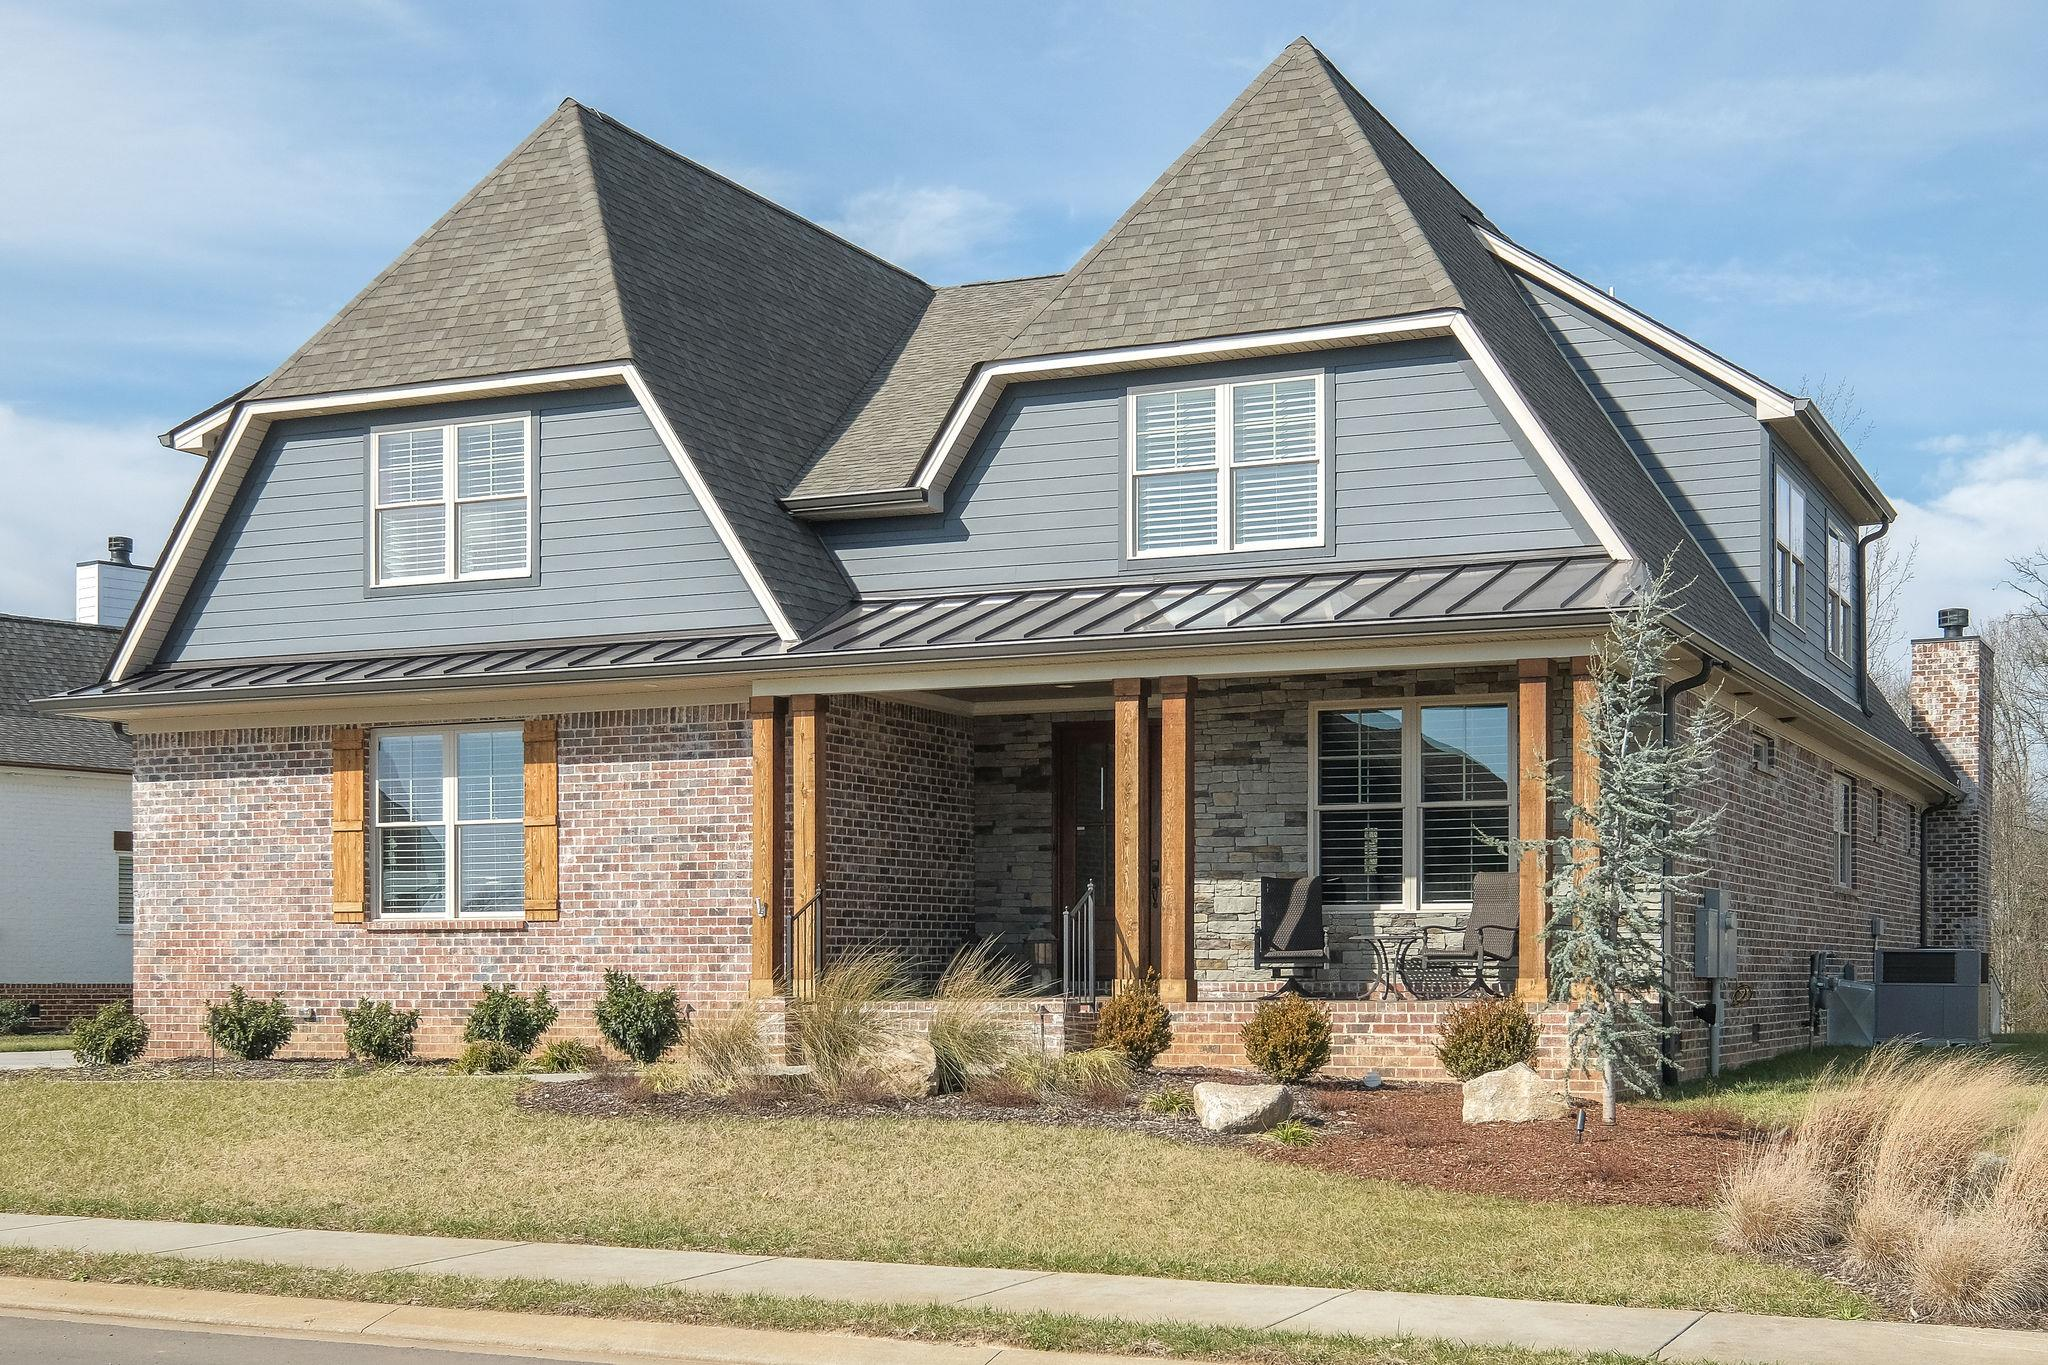 1107 Julian Way, Murfreesboro, TN 37128 - Murfreesboro, TN real estate listing